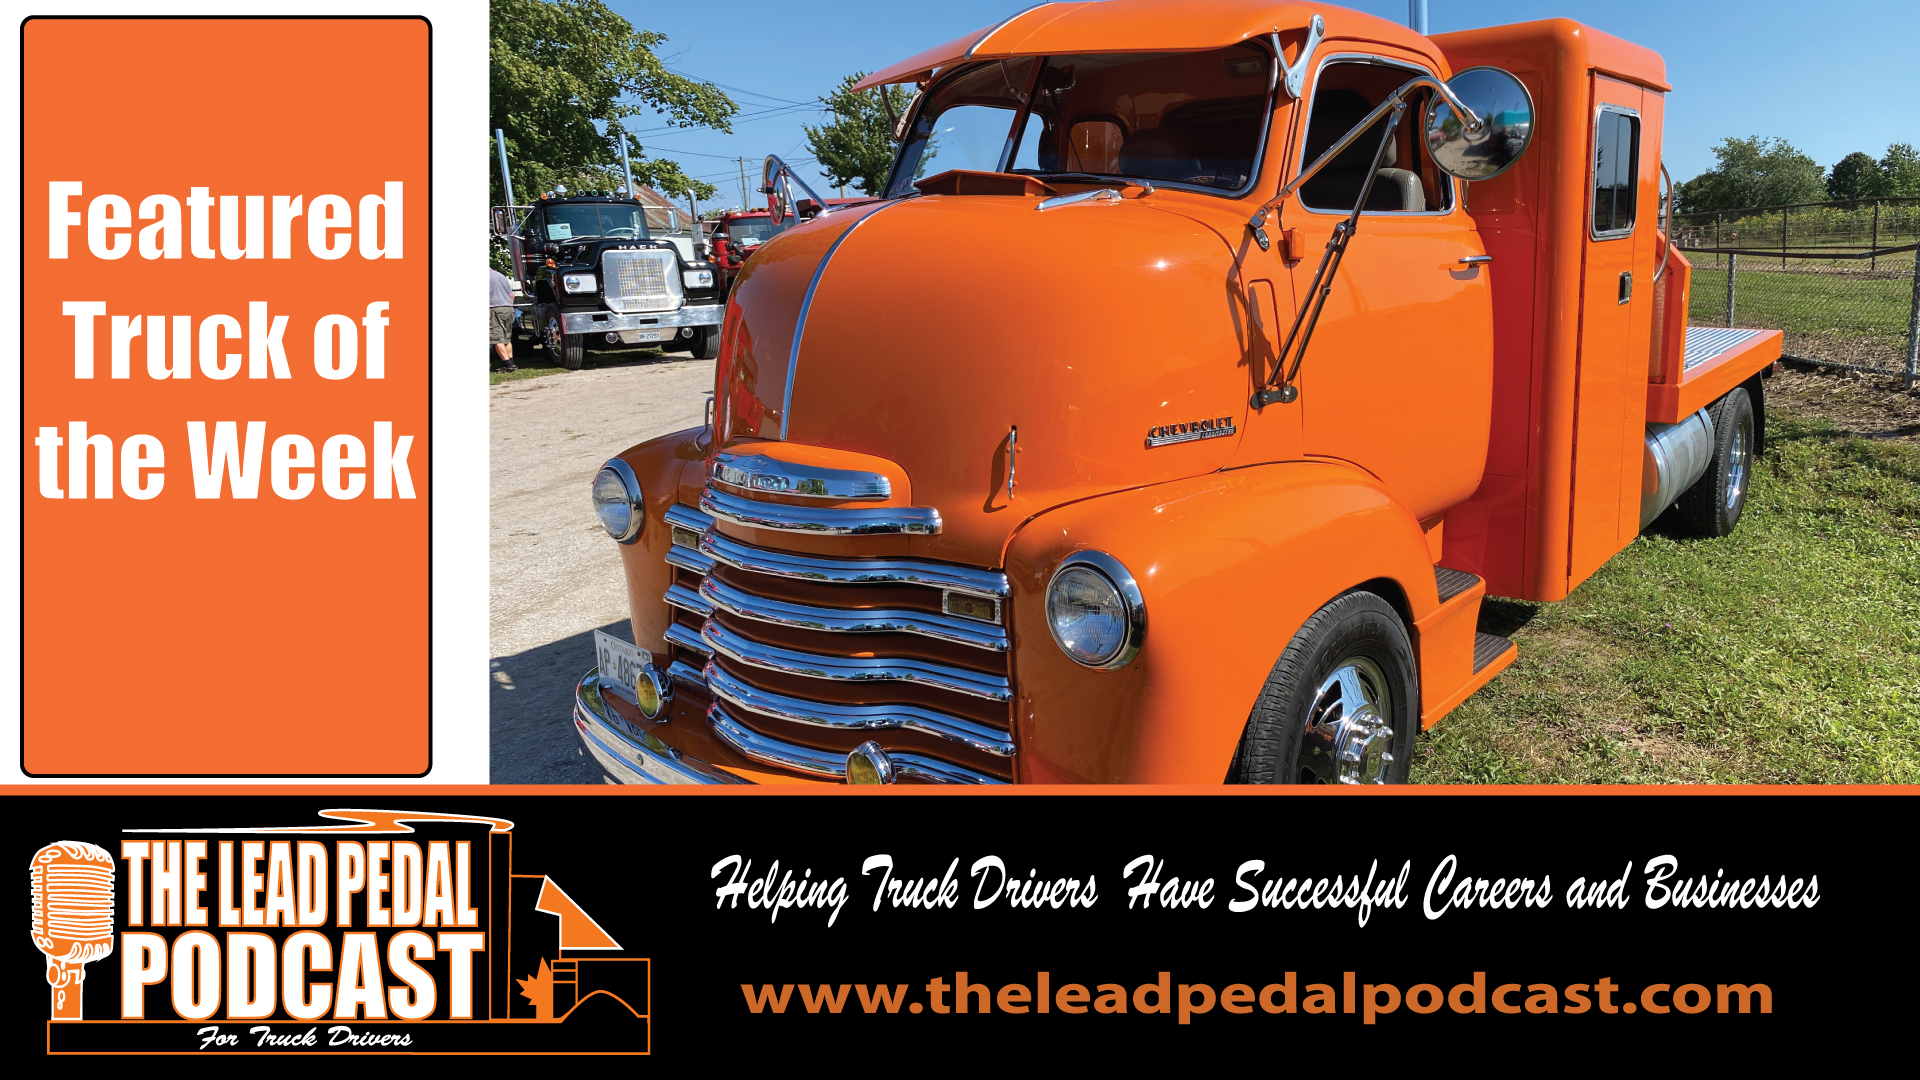 LP703 Featured Truck of the Week - 1947 Chevy Loadstar